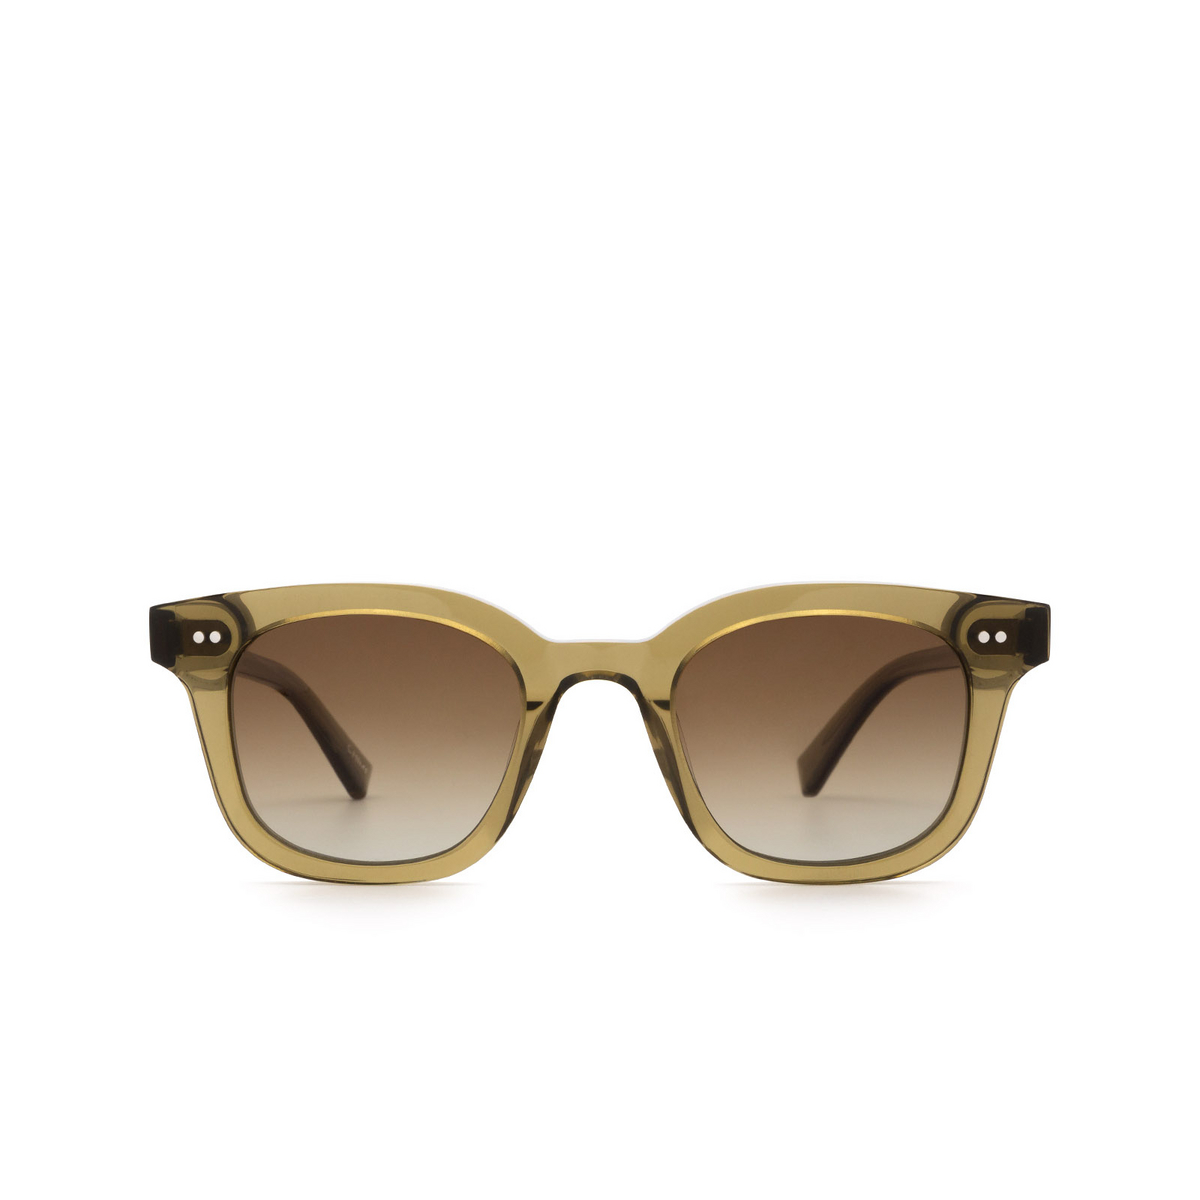 Chimi® Square Sunglasses: 02 color Green - front view.